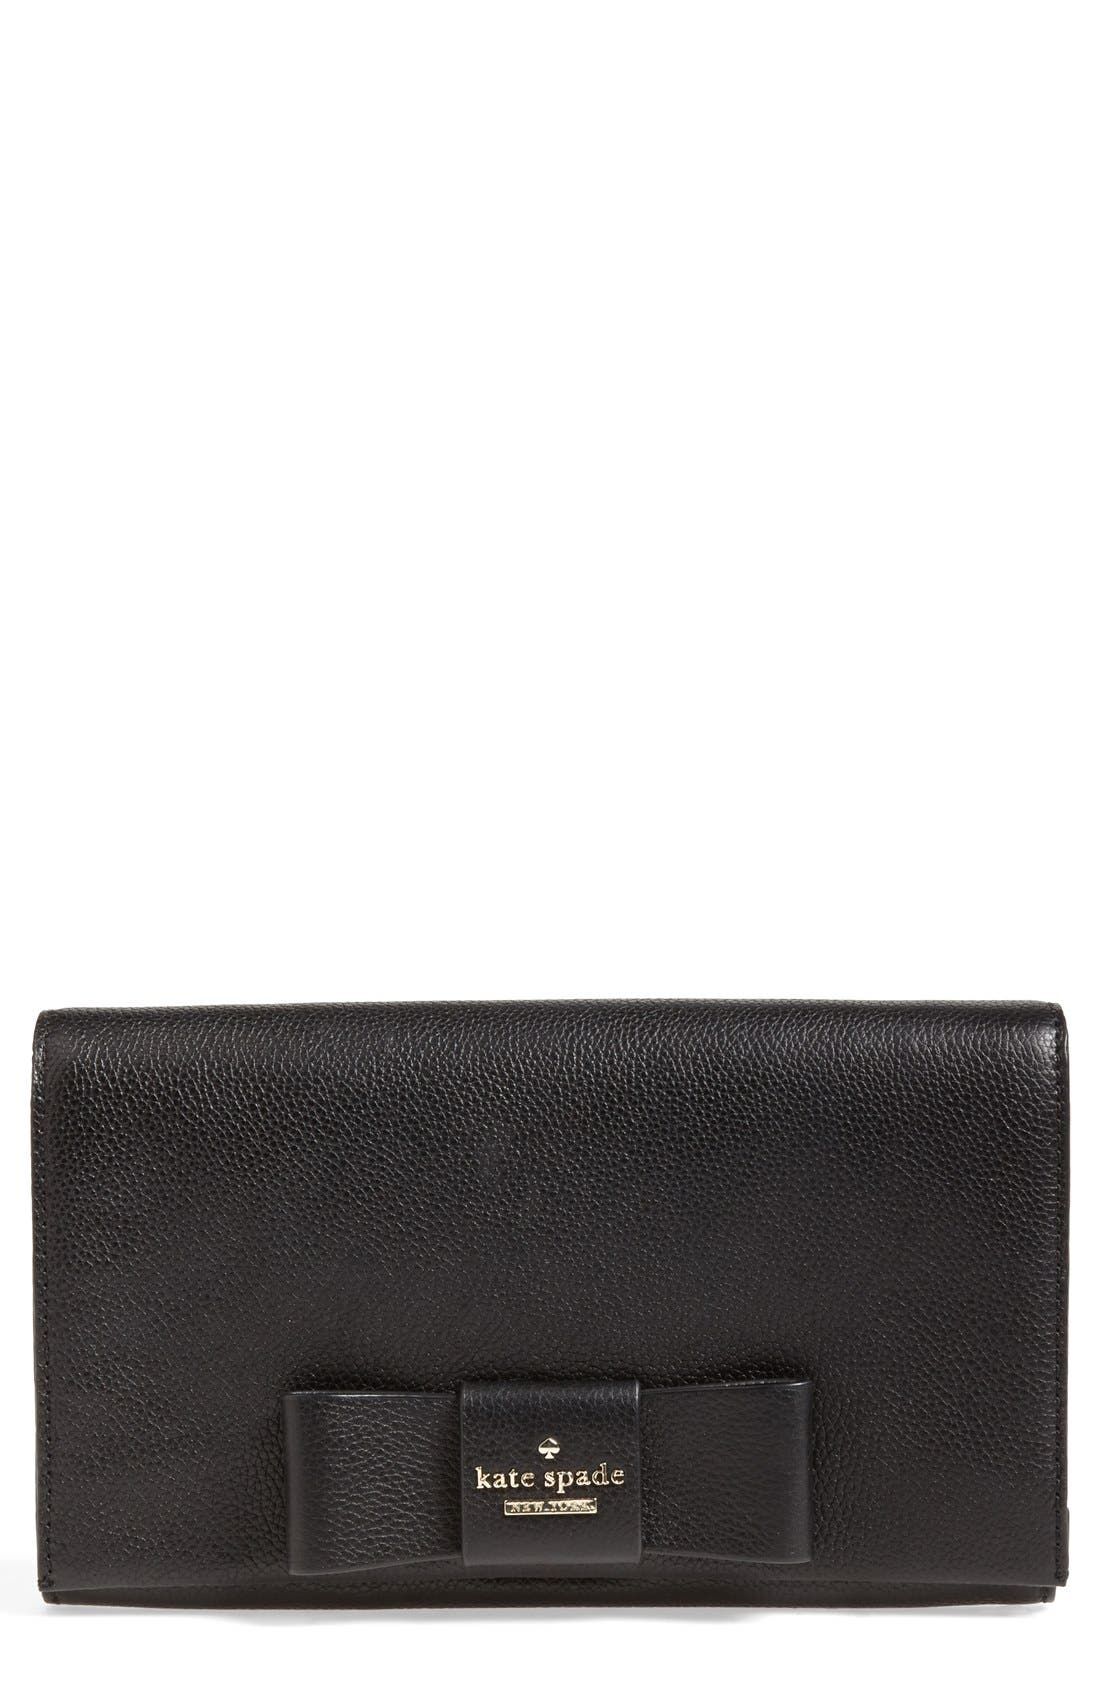 'julia street - tally' leather clutch,                             Main thumbnail 1, color,                             001